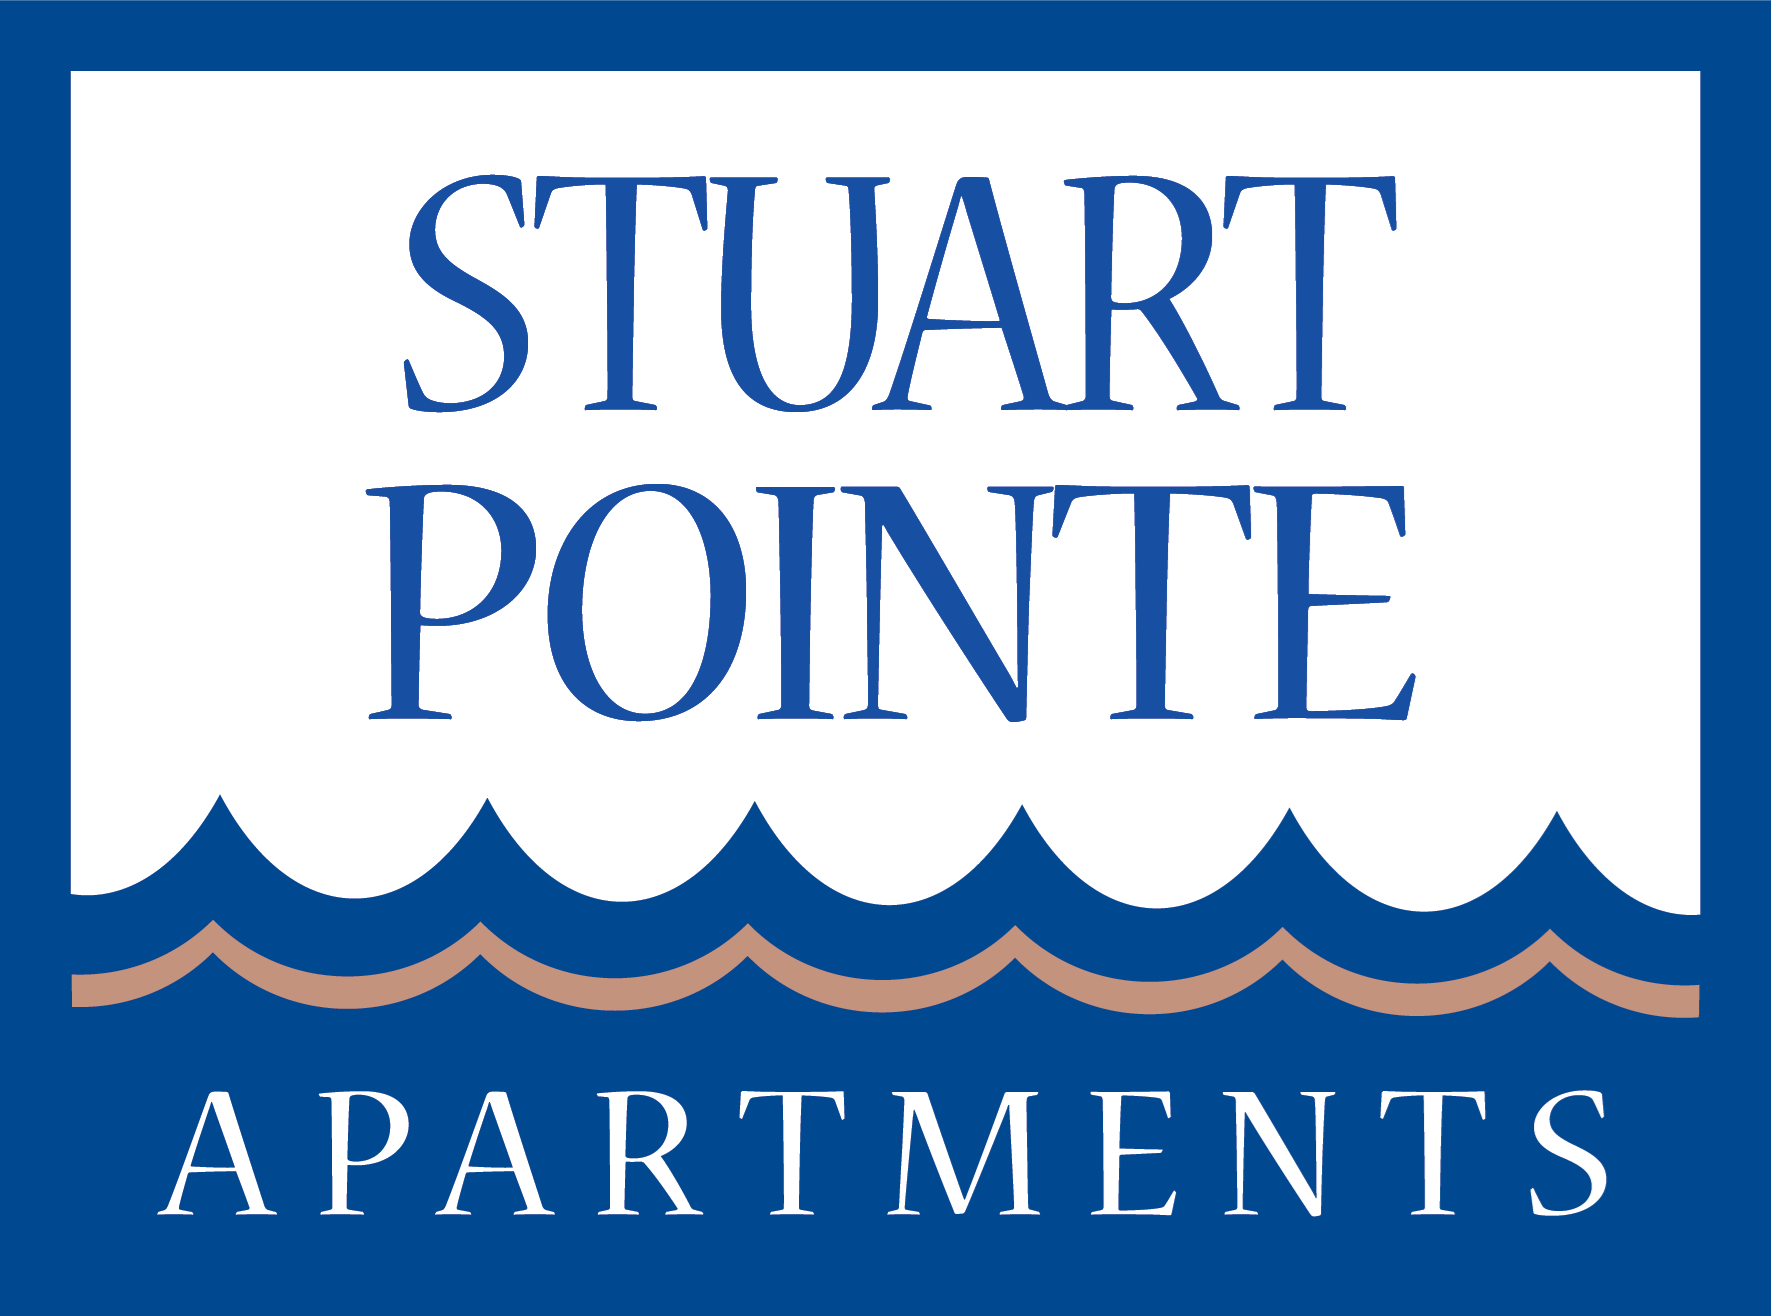 Stuart Pointe Apartments for rent in Jensen Beach, FL. Make this community your new home or visit other Concord Rents communities at ConcordRents.com. Logo